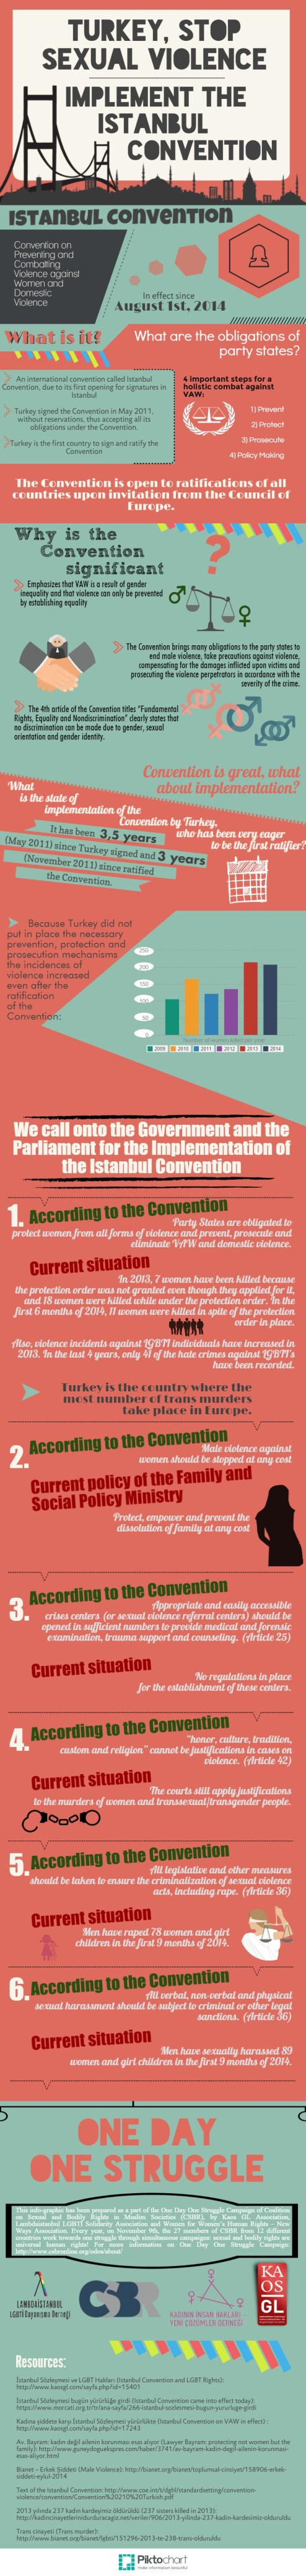 Turkey Implement the Istanbul